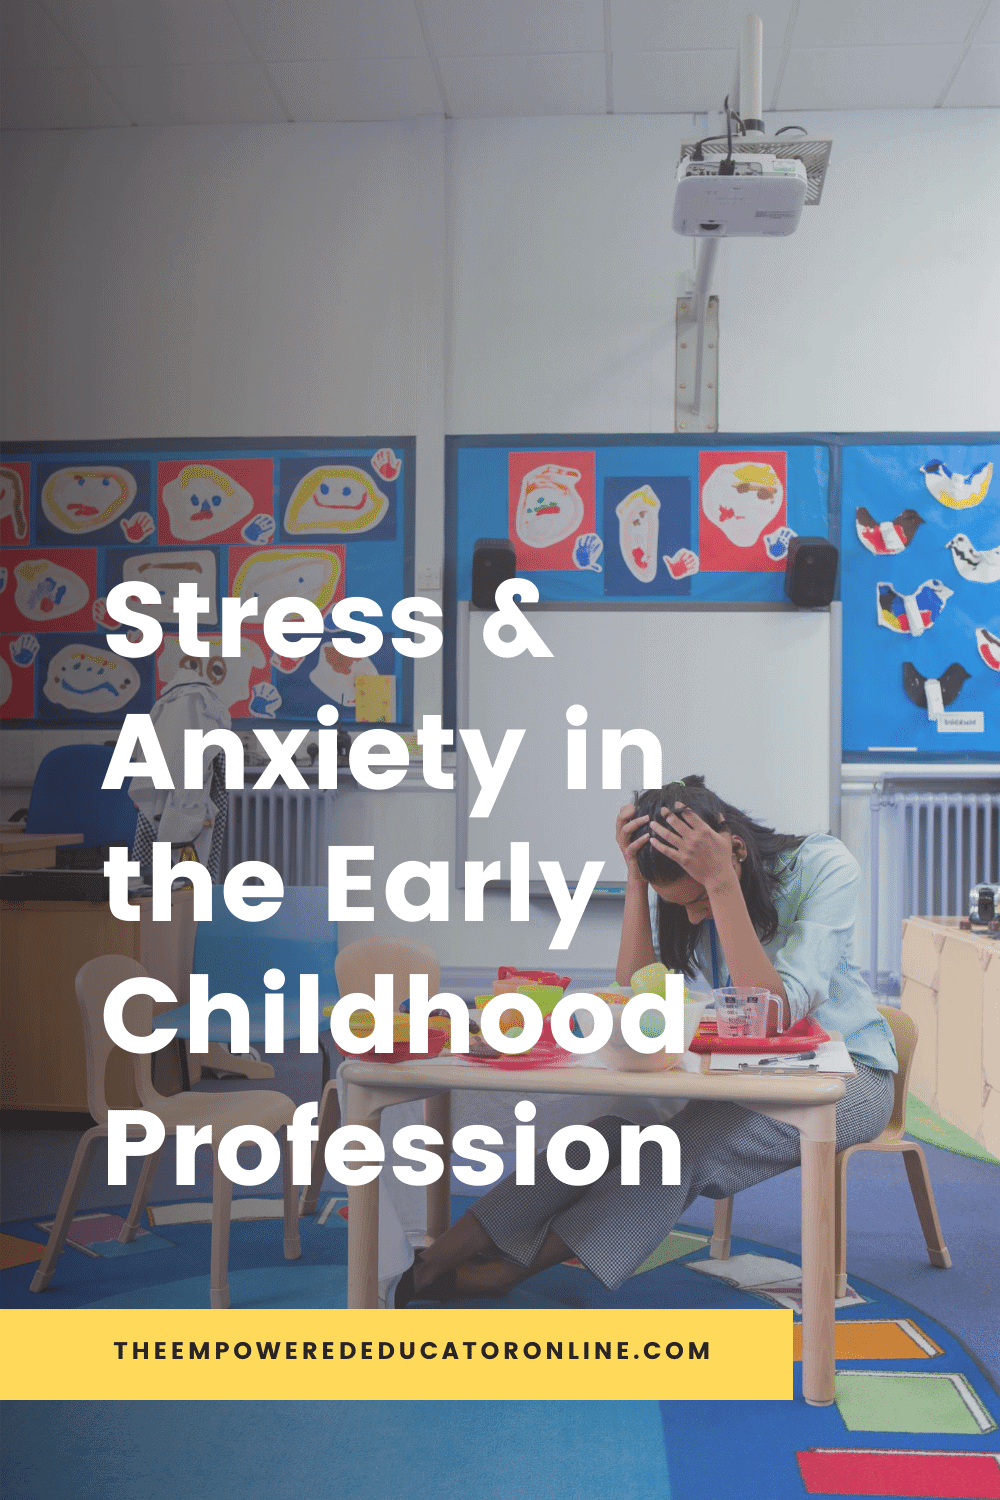 Stress & Anxiety in the Early Childhood Profession